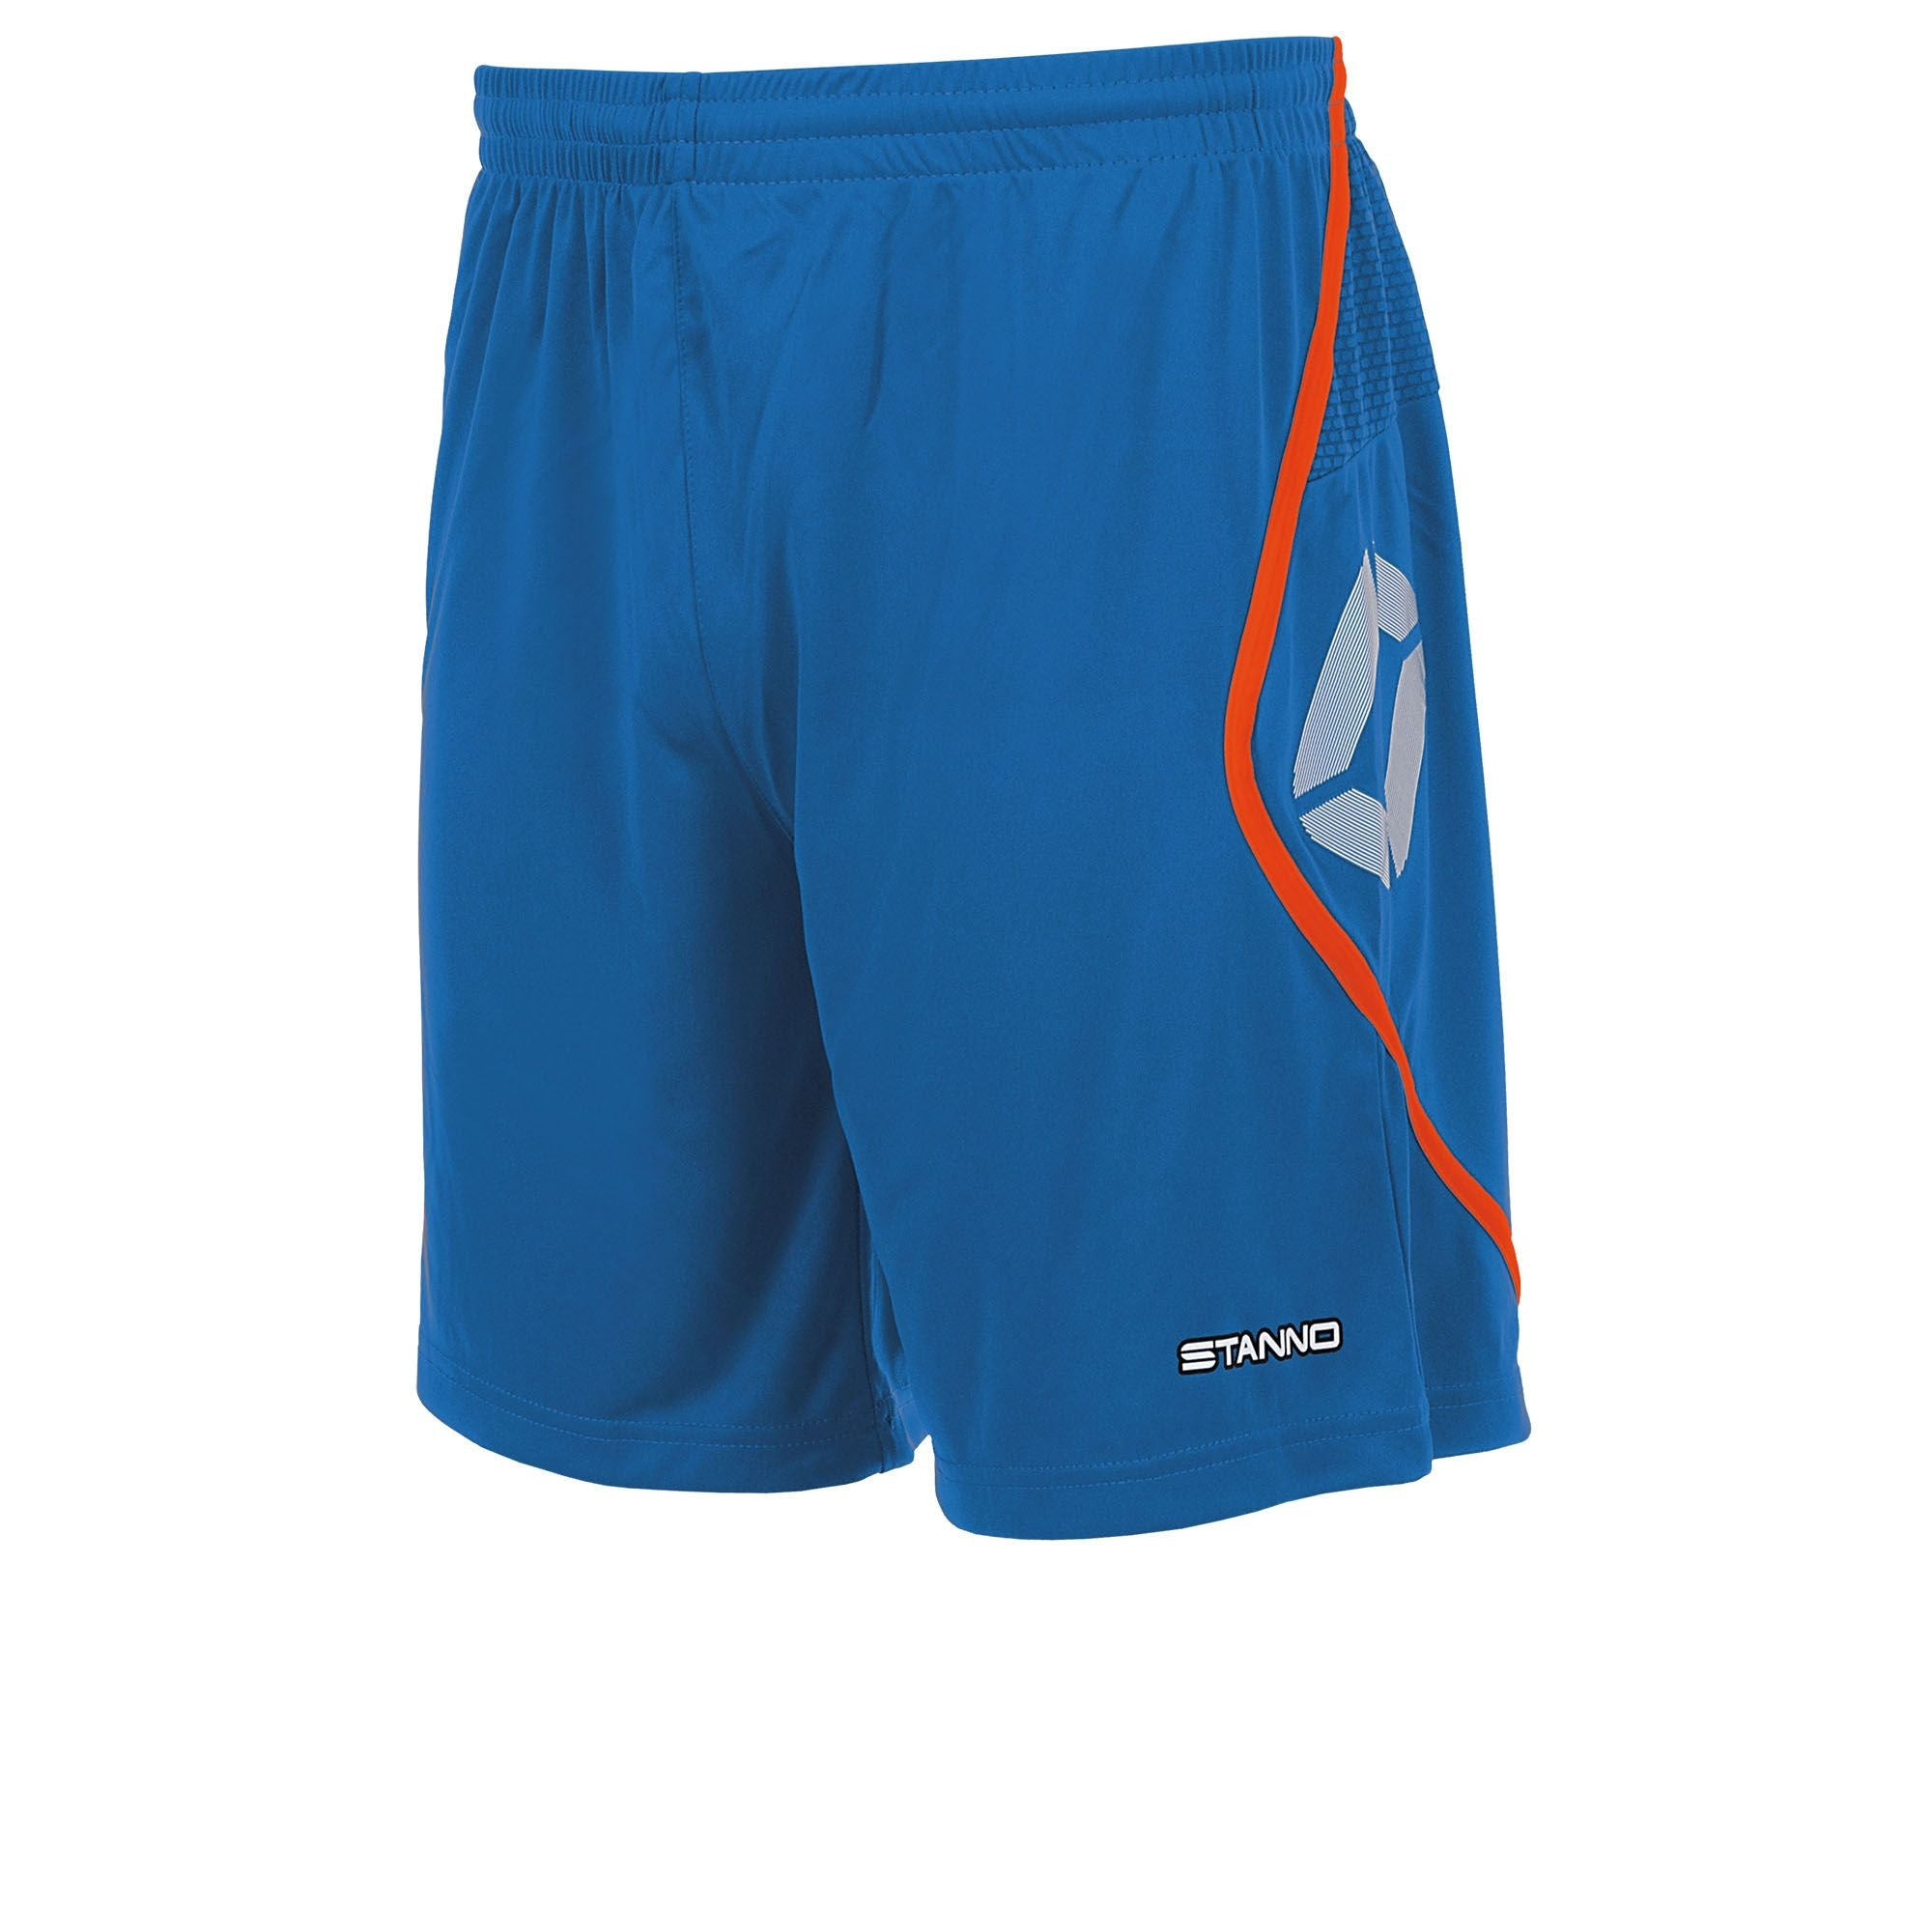 Stanno Pisa Shorts - Blue/Shocking Orange